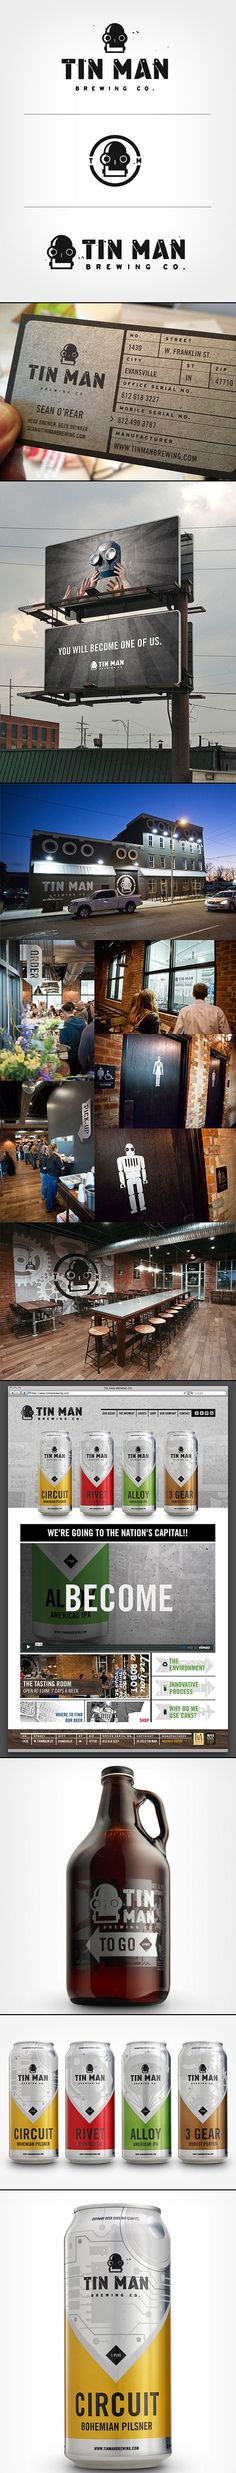 Branding of a Brewery - Tin Man Brewing Co. A cool look at building a brand from all angles. Brand Identity Design, Graphic Design Branding, Corporate Design, Corporate Identity, Graphic Design Illustration, Business Design, Visual Identity, Logo Design, Identity Branding